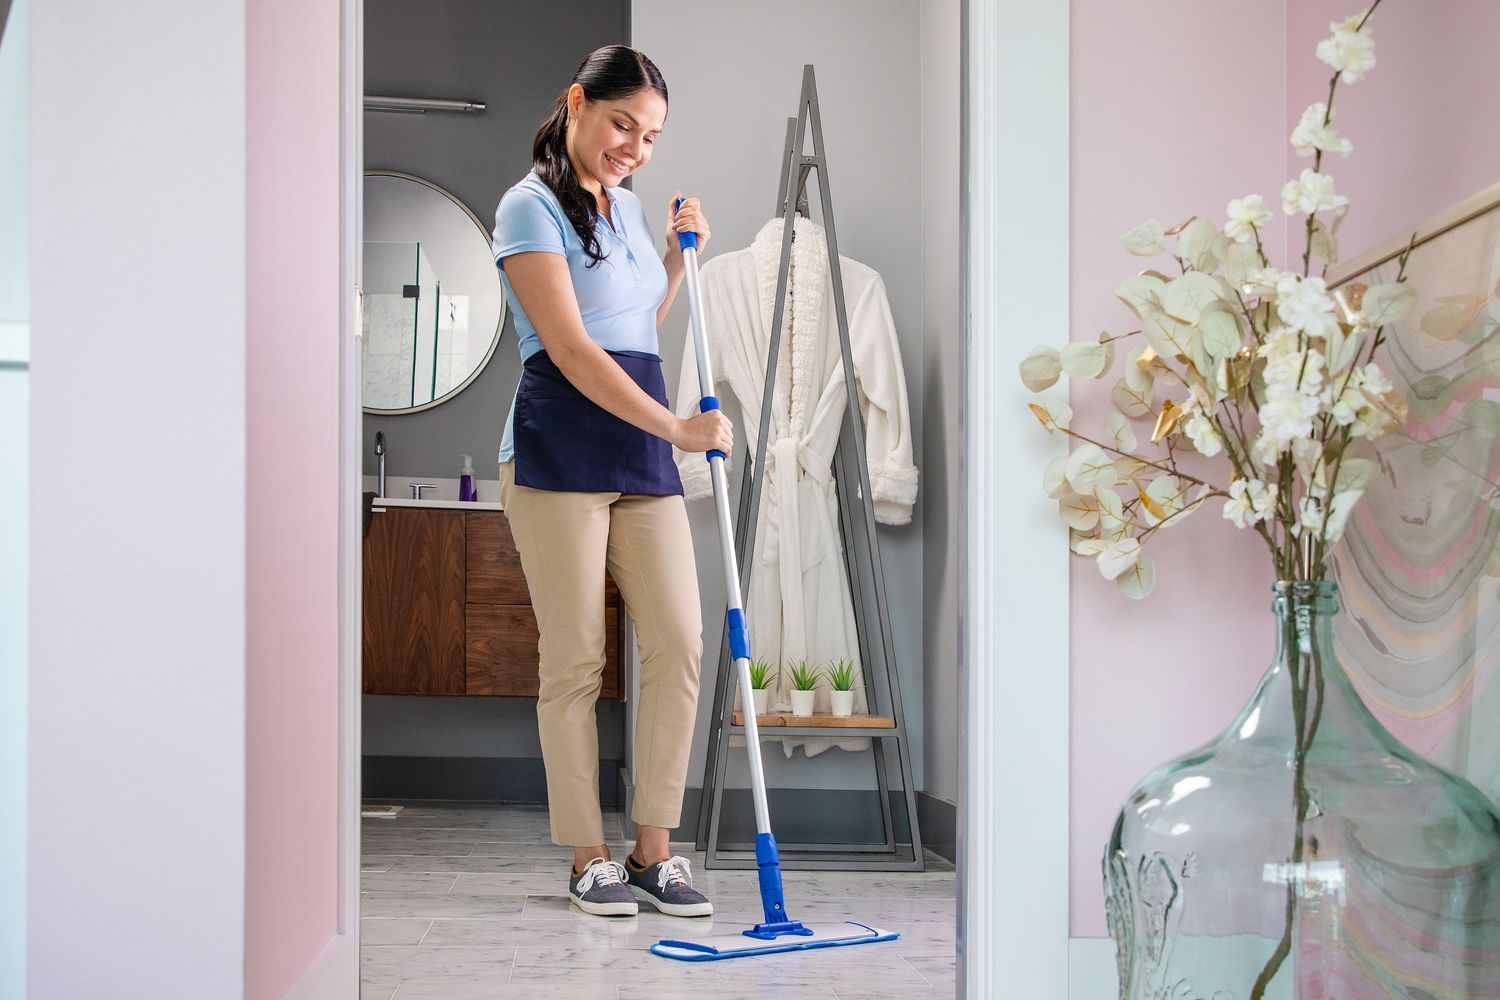 CHOOSING THE BEST MICROFIBER MOP SYSTEM